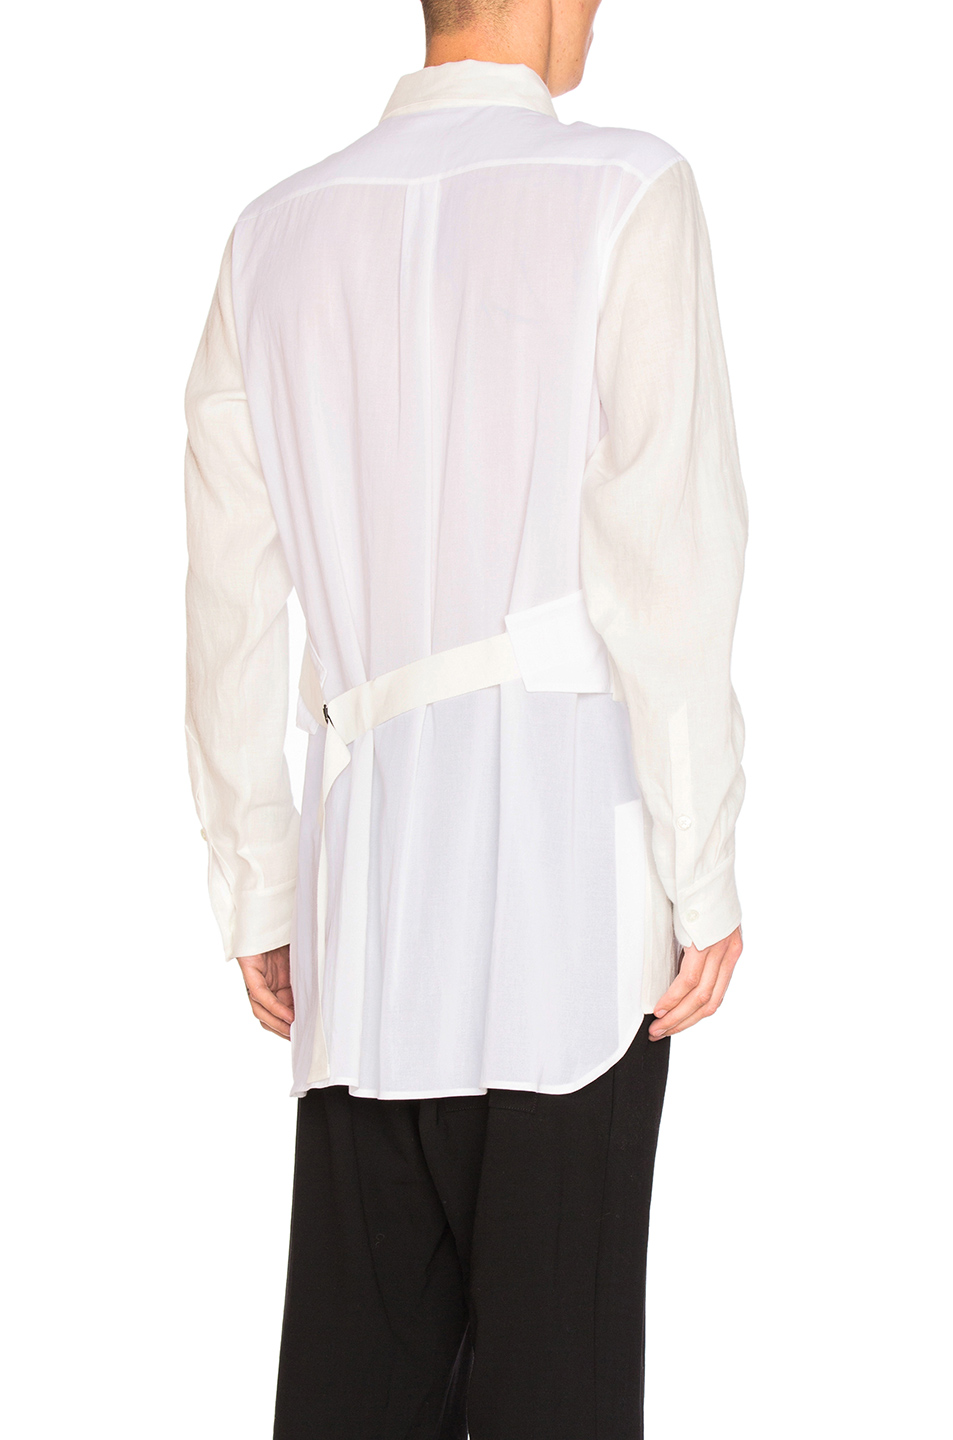 Ann Demeulemeester Strap Back Shirt in White